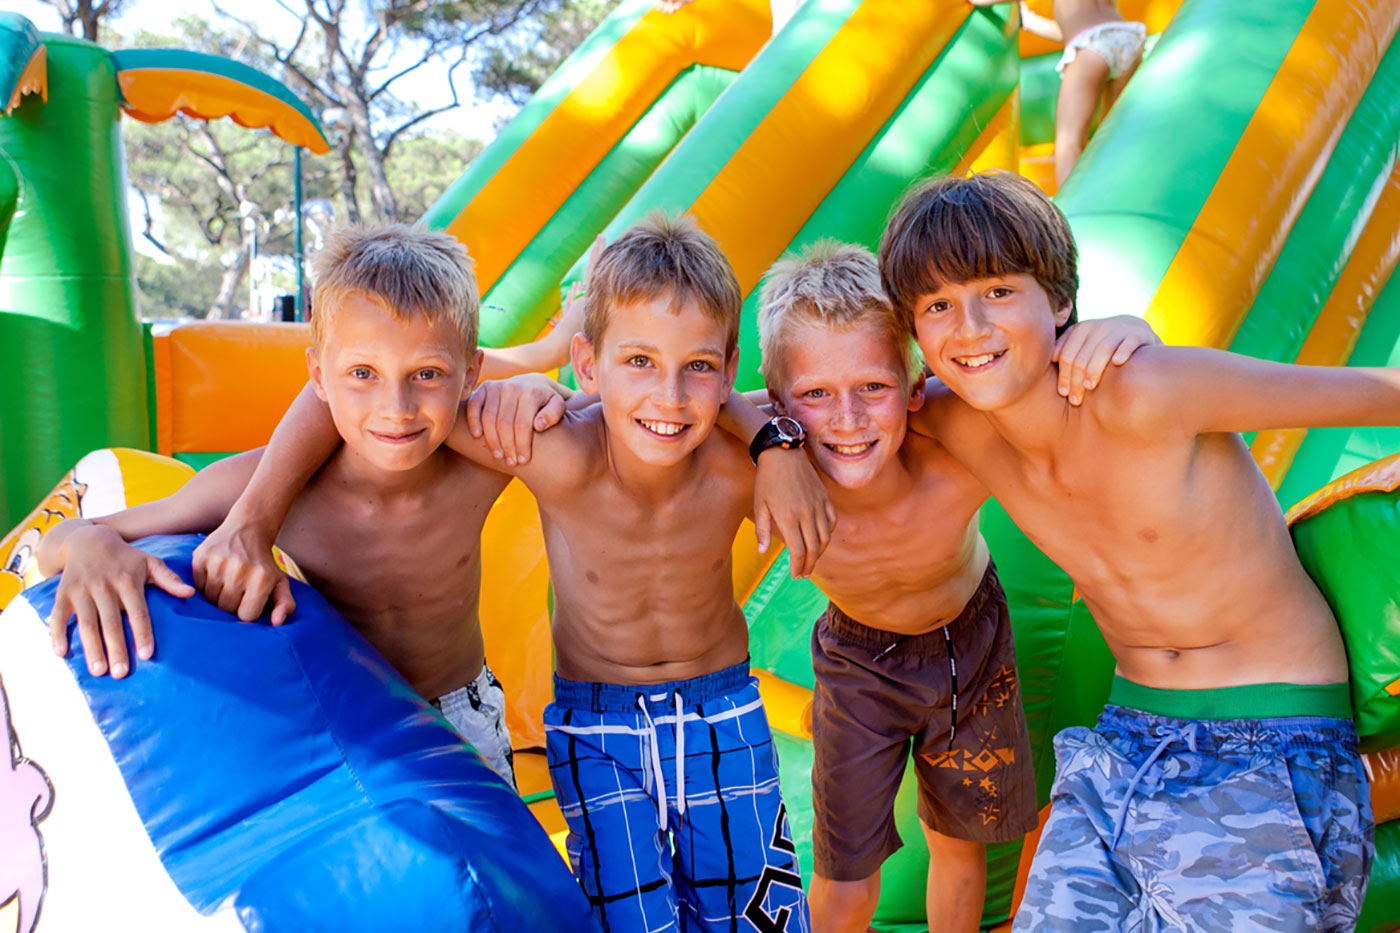 Campsite with games and activities for children